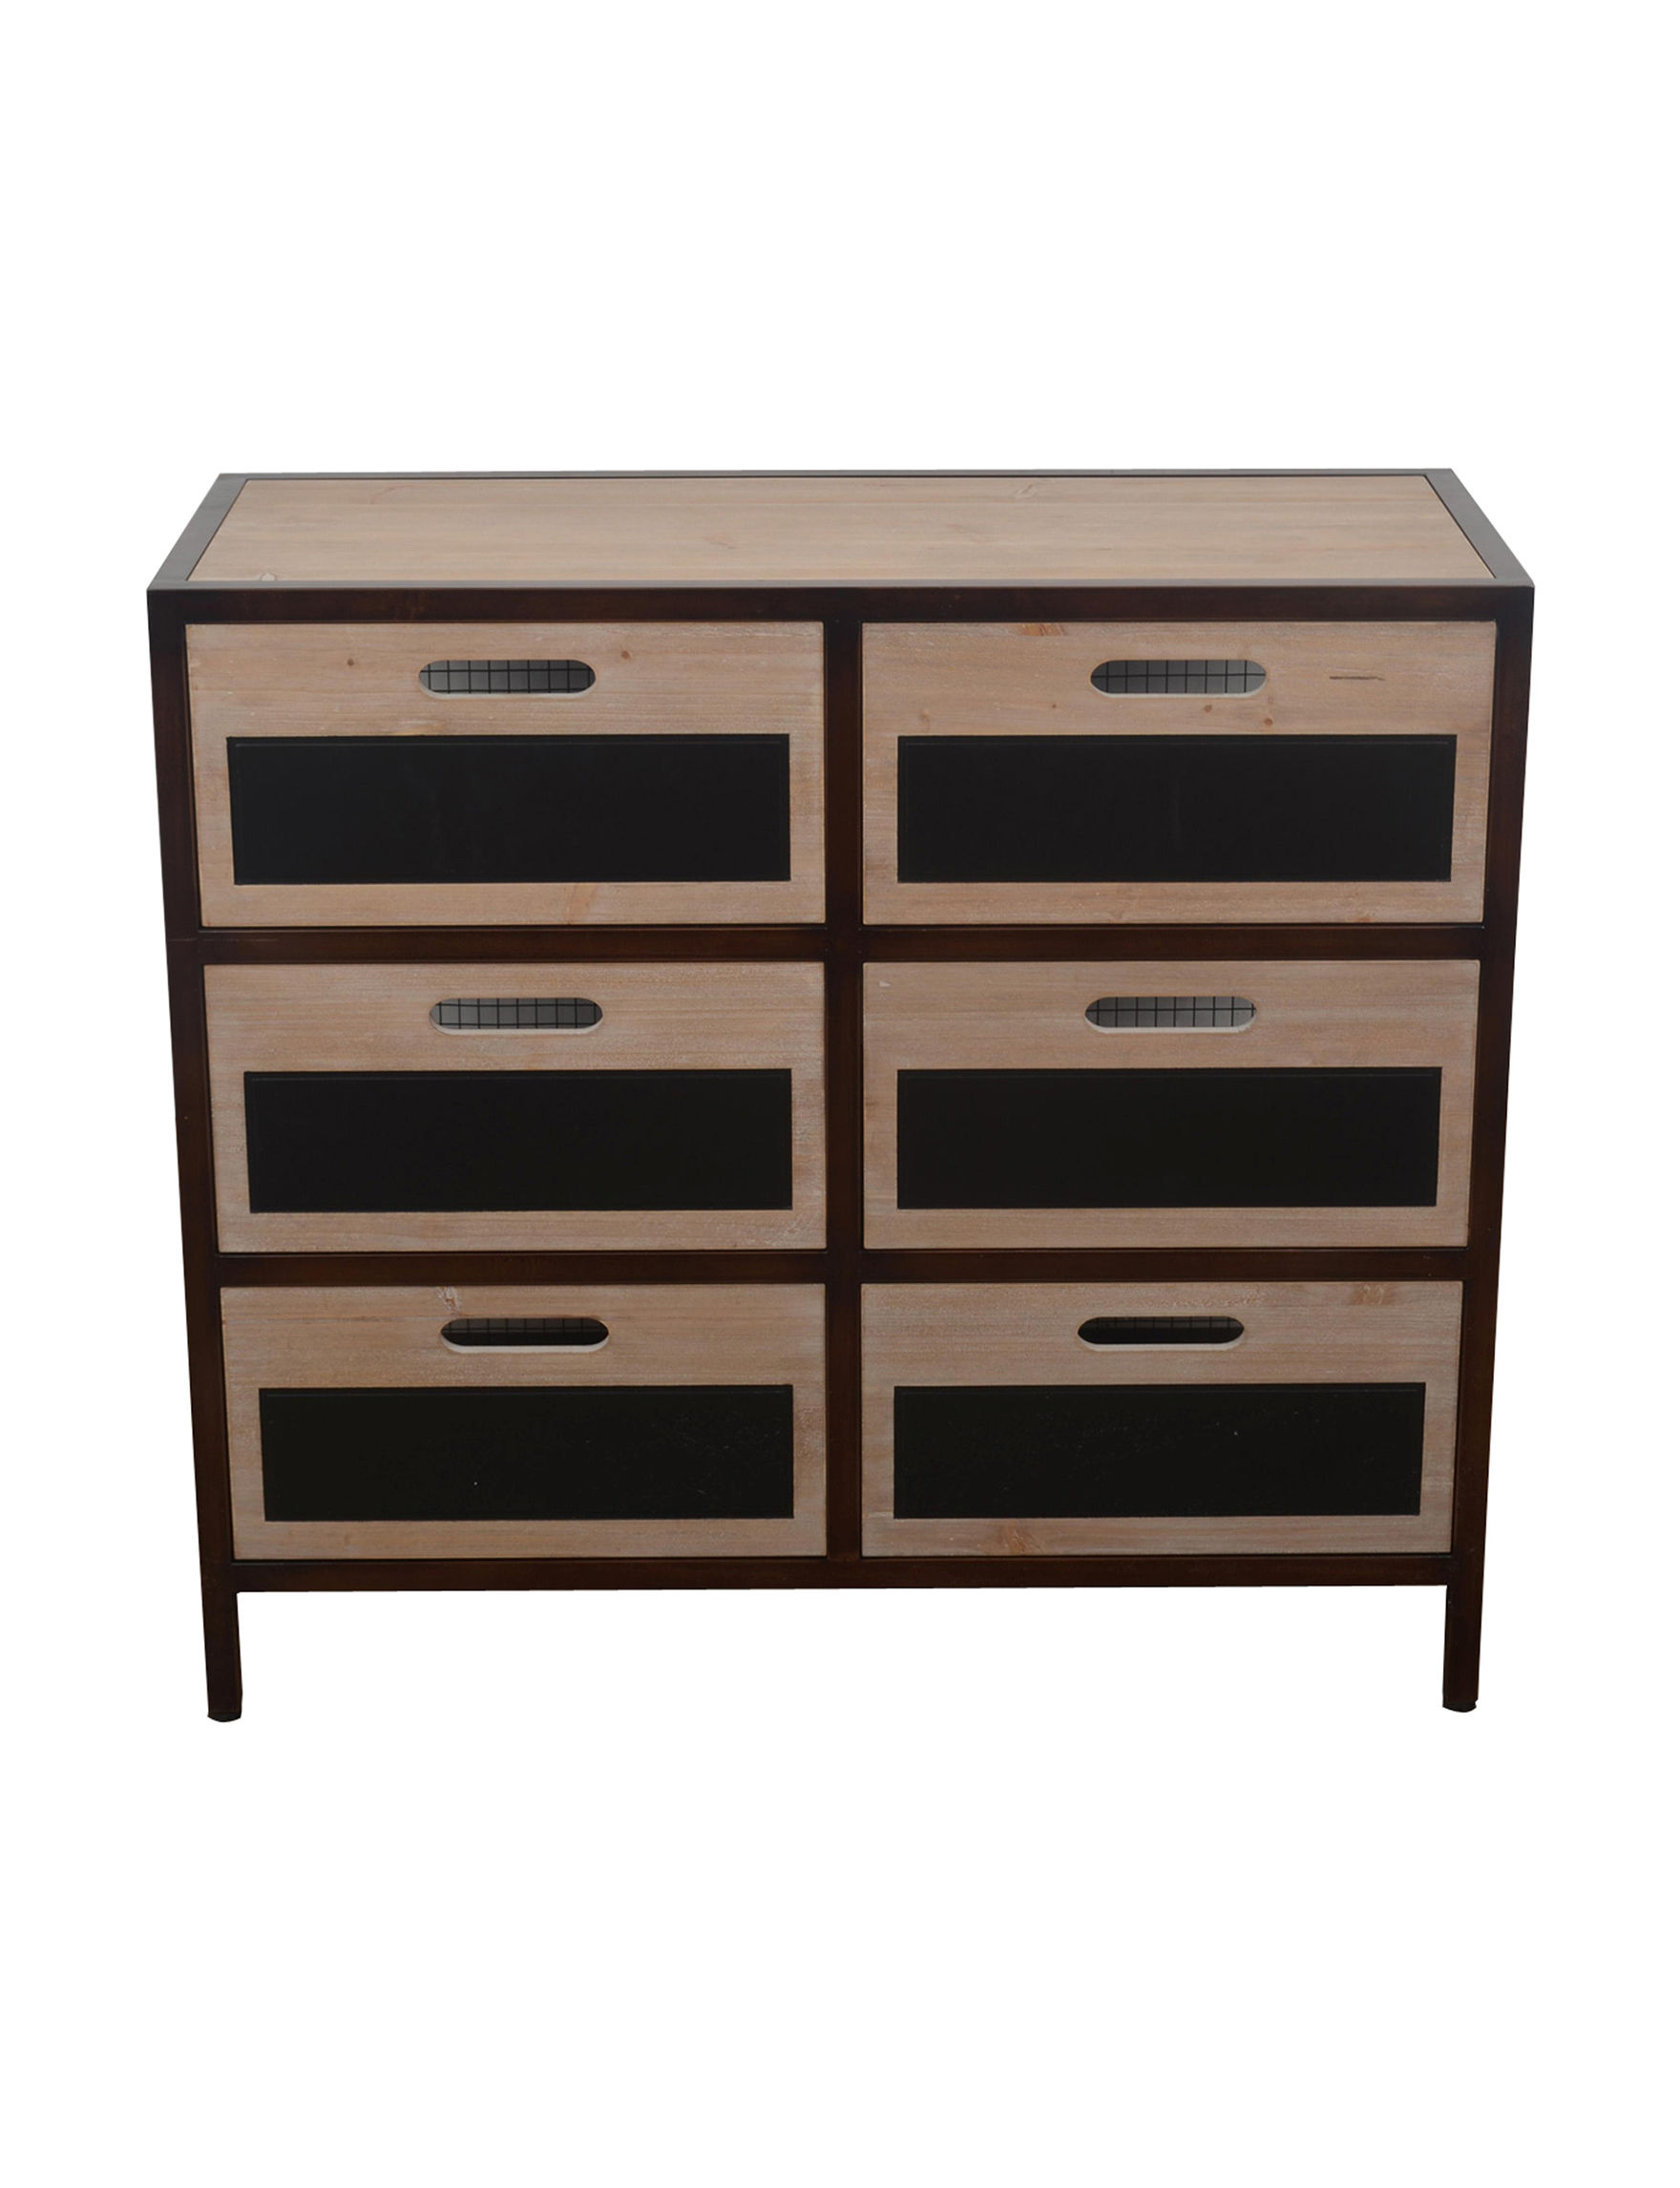 Decor Therapy Brown Dressers & Chests Bathroom Furniture Bedroom Furniture Entryway Furniture Home Office Furniture